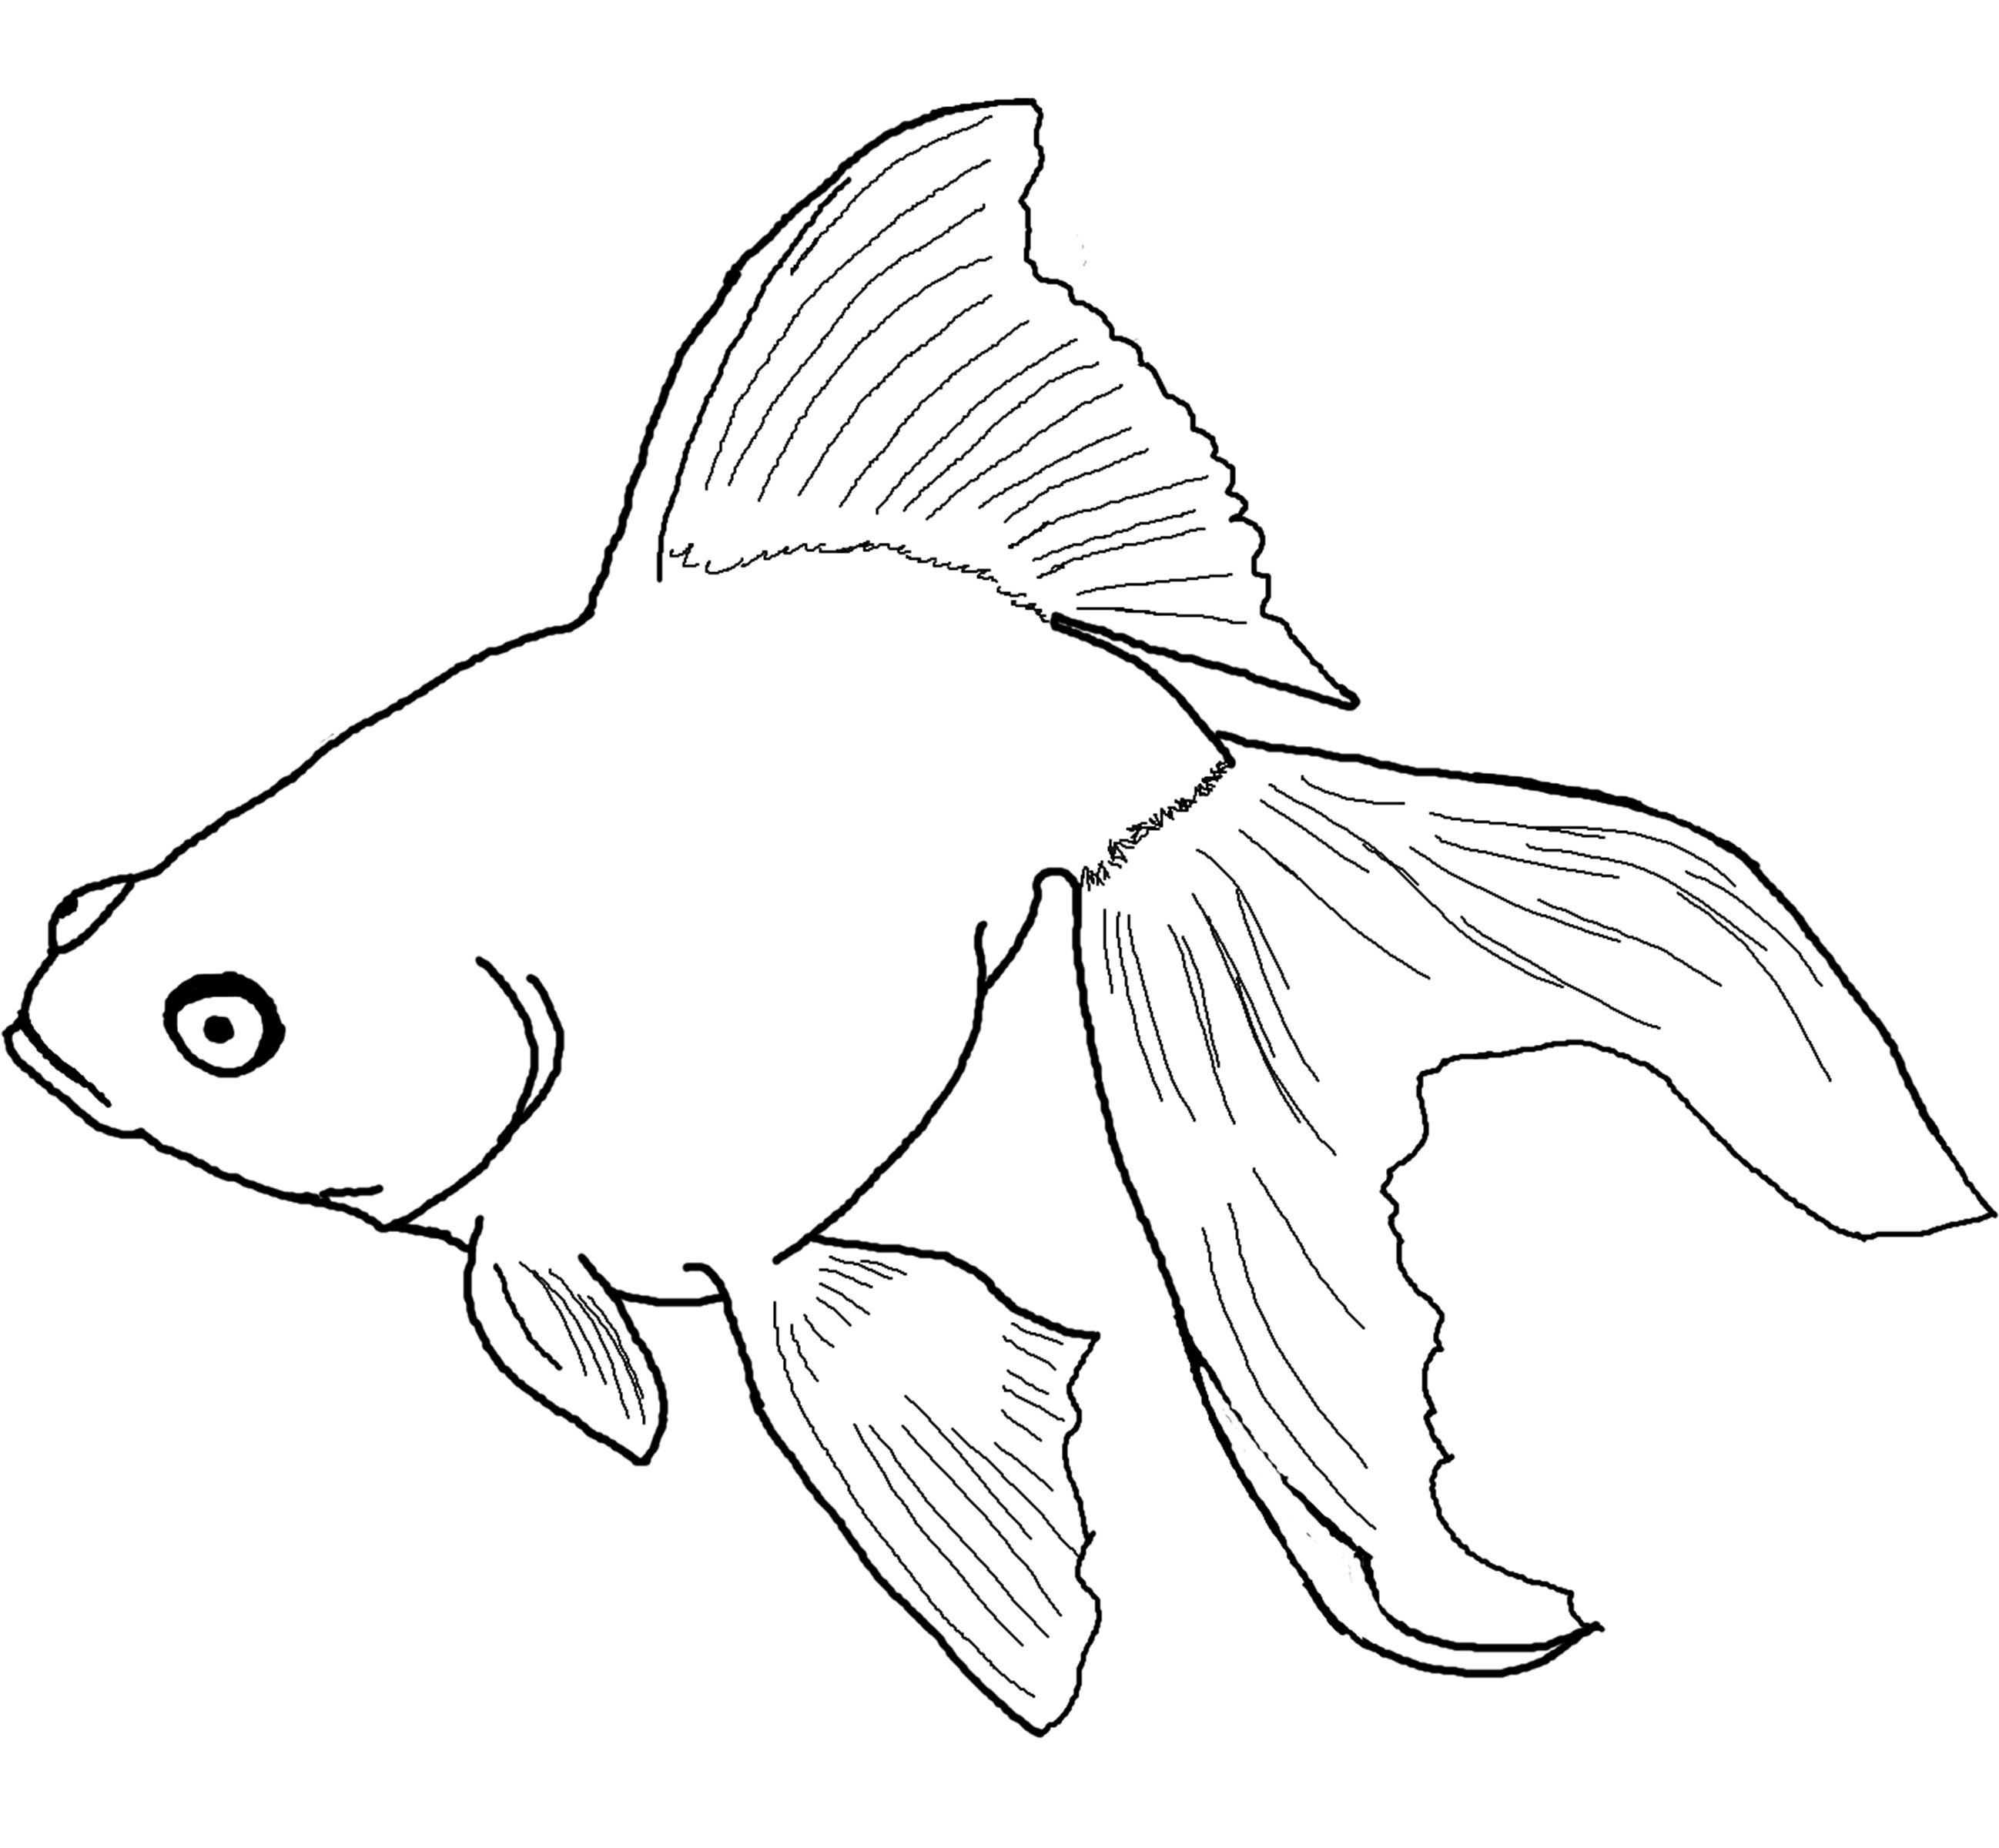 Fish Clip Art Coloring Pages At Getdrawings Com Free For Personal